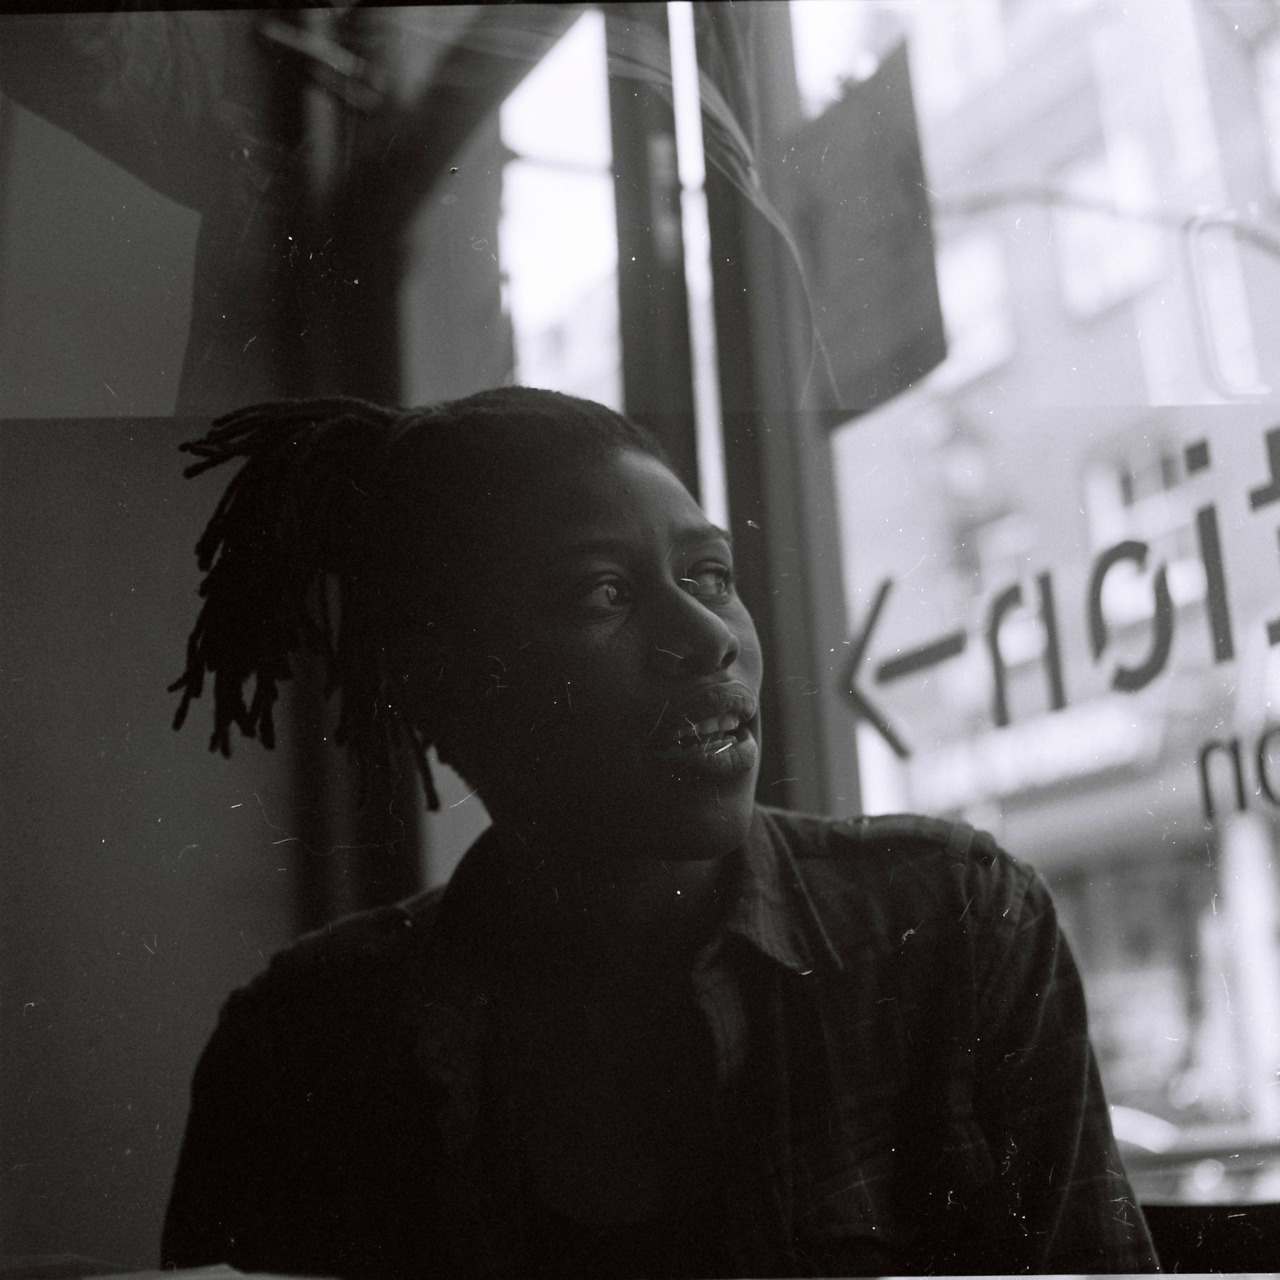 Outtakes: End of the roll.  Denrele, Exmouth Market.  On another front, I pulled my Pentax ME out at a gathering with friends over Christmas. One of the guys caught sight of it, said: Film? Yes. Why? (with an incredulous expression). At the time, I just couldn't articulate a response. Because I like it. That was the best I could come up with.